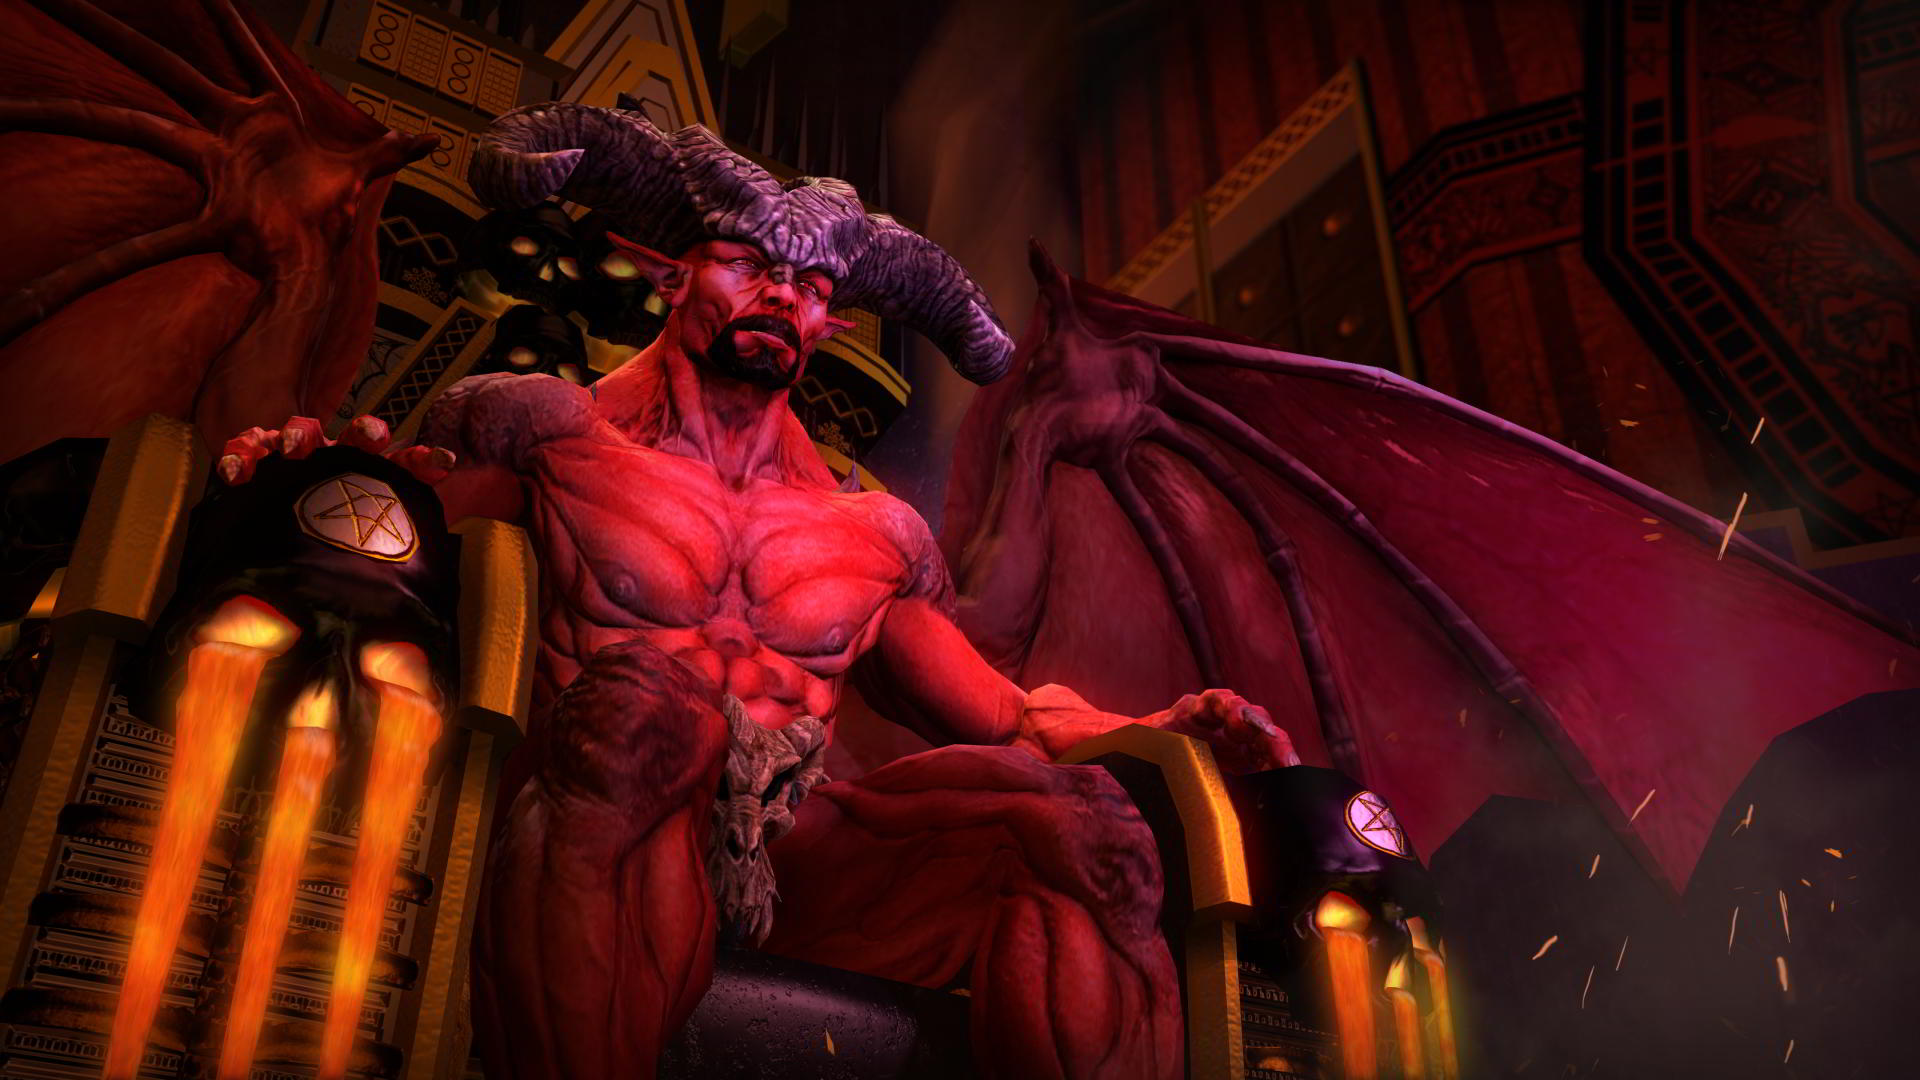 satan in saints row gat out of hell